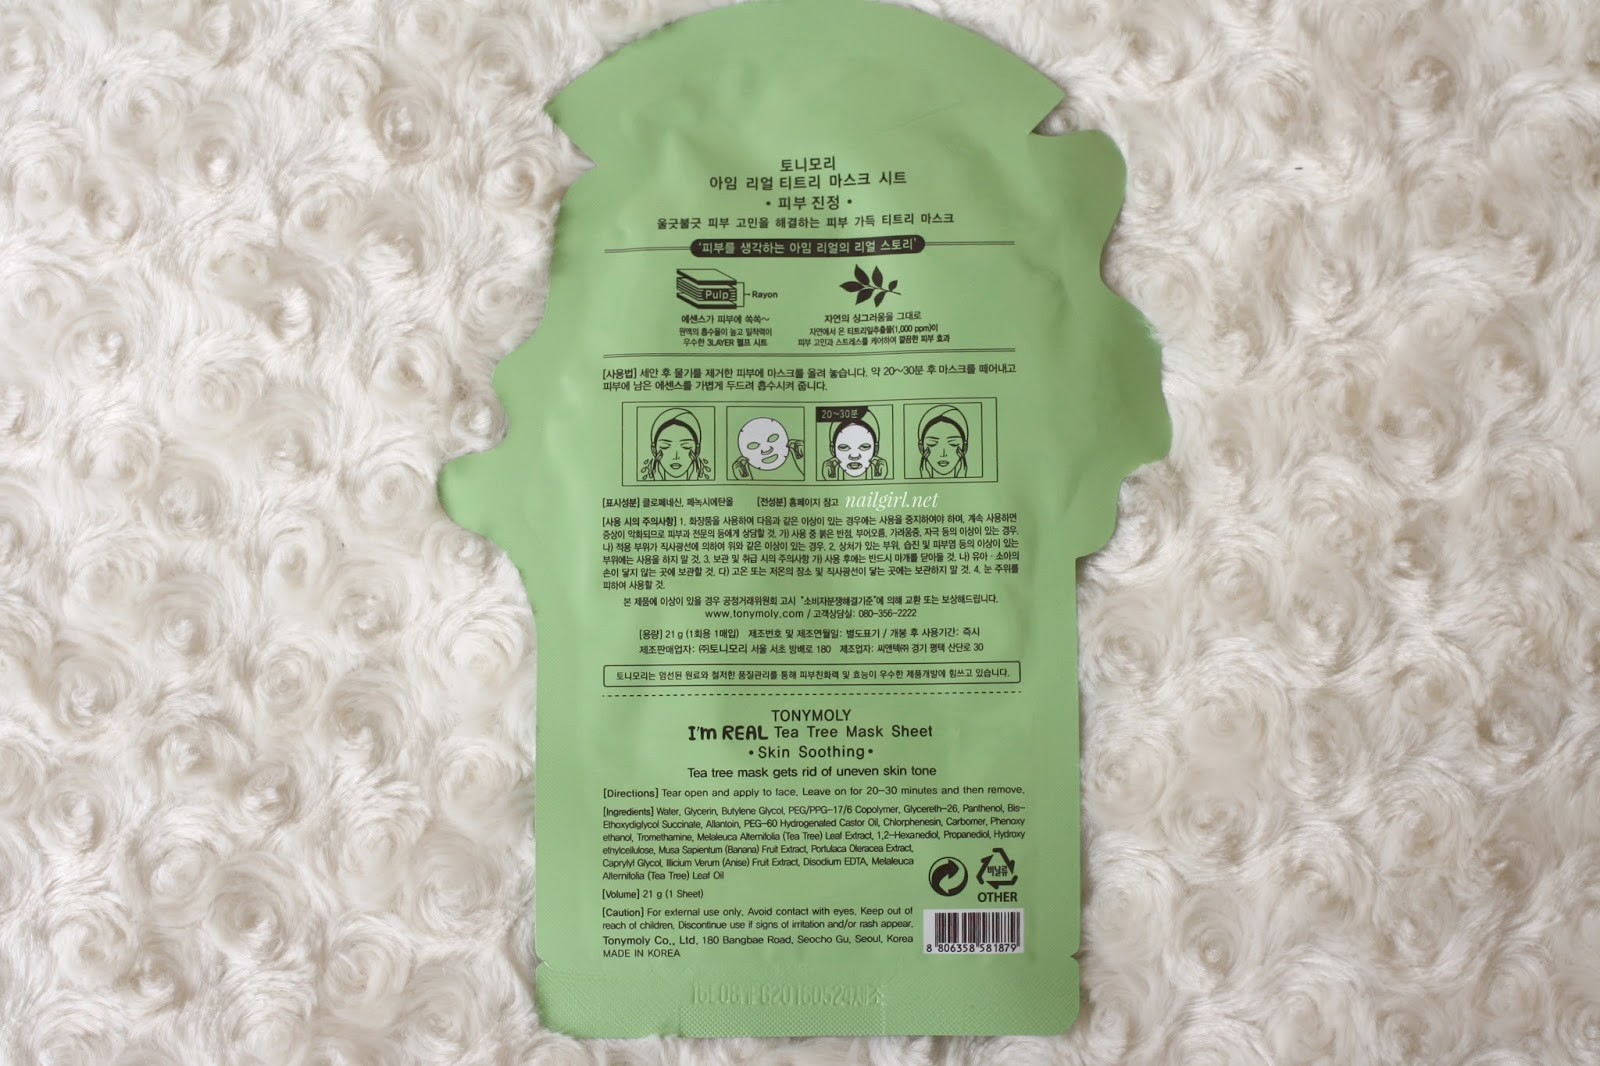 tony moly i'm real tea tree soothing mask review